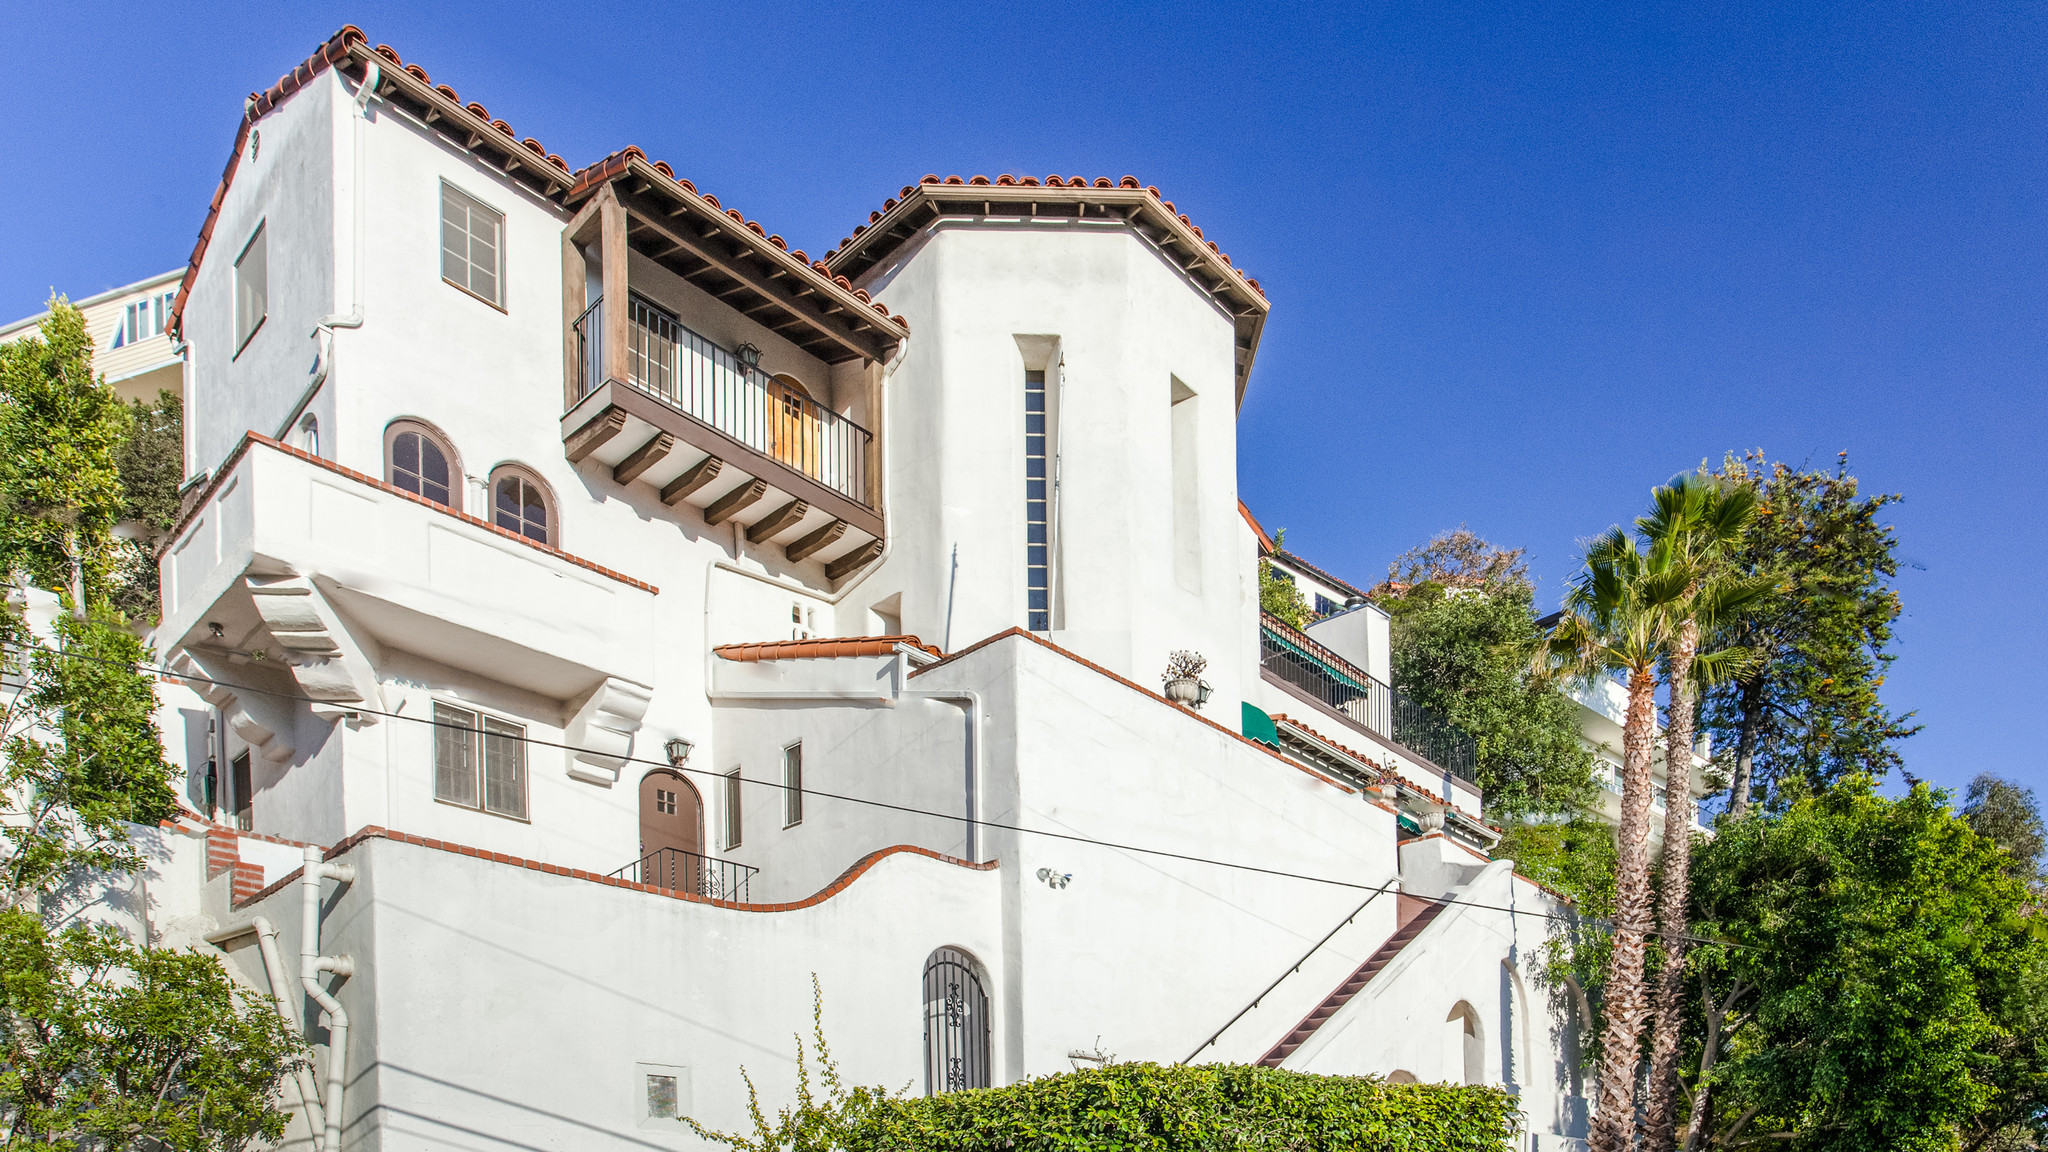 Home Of The Day 1920s Spanish Revival In Hollywood Hills